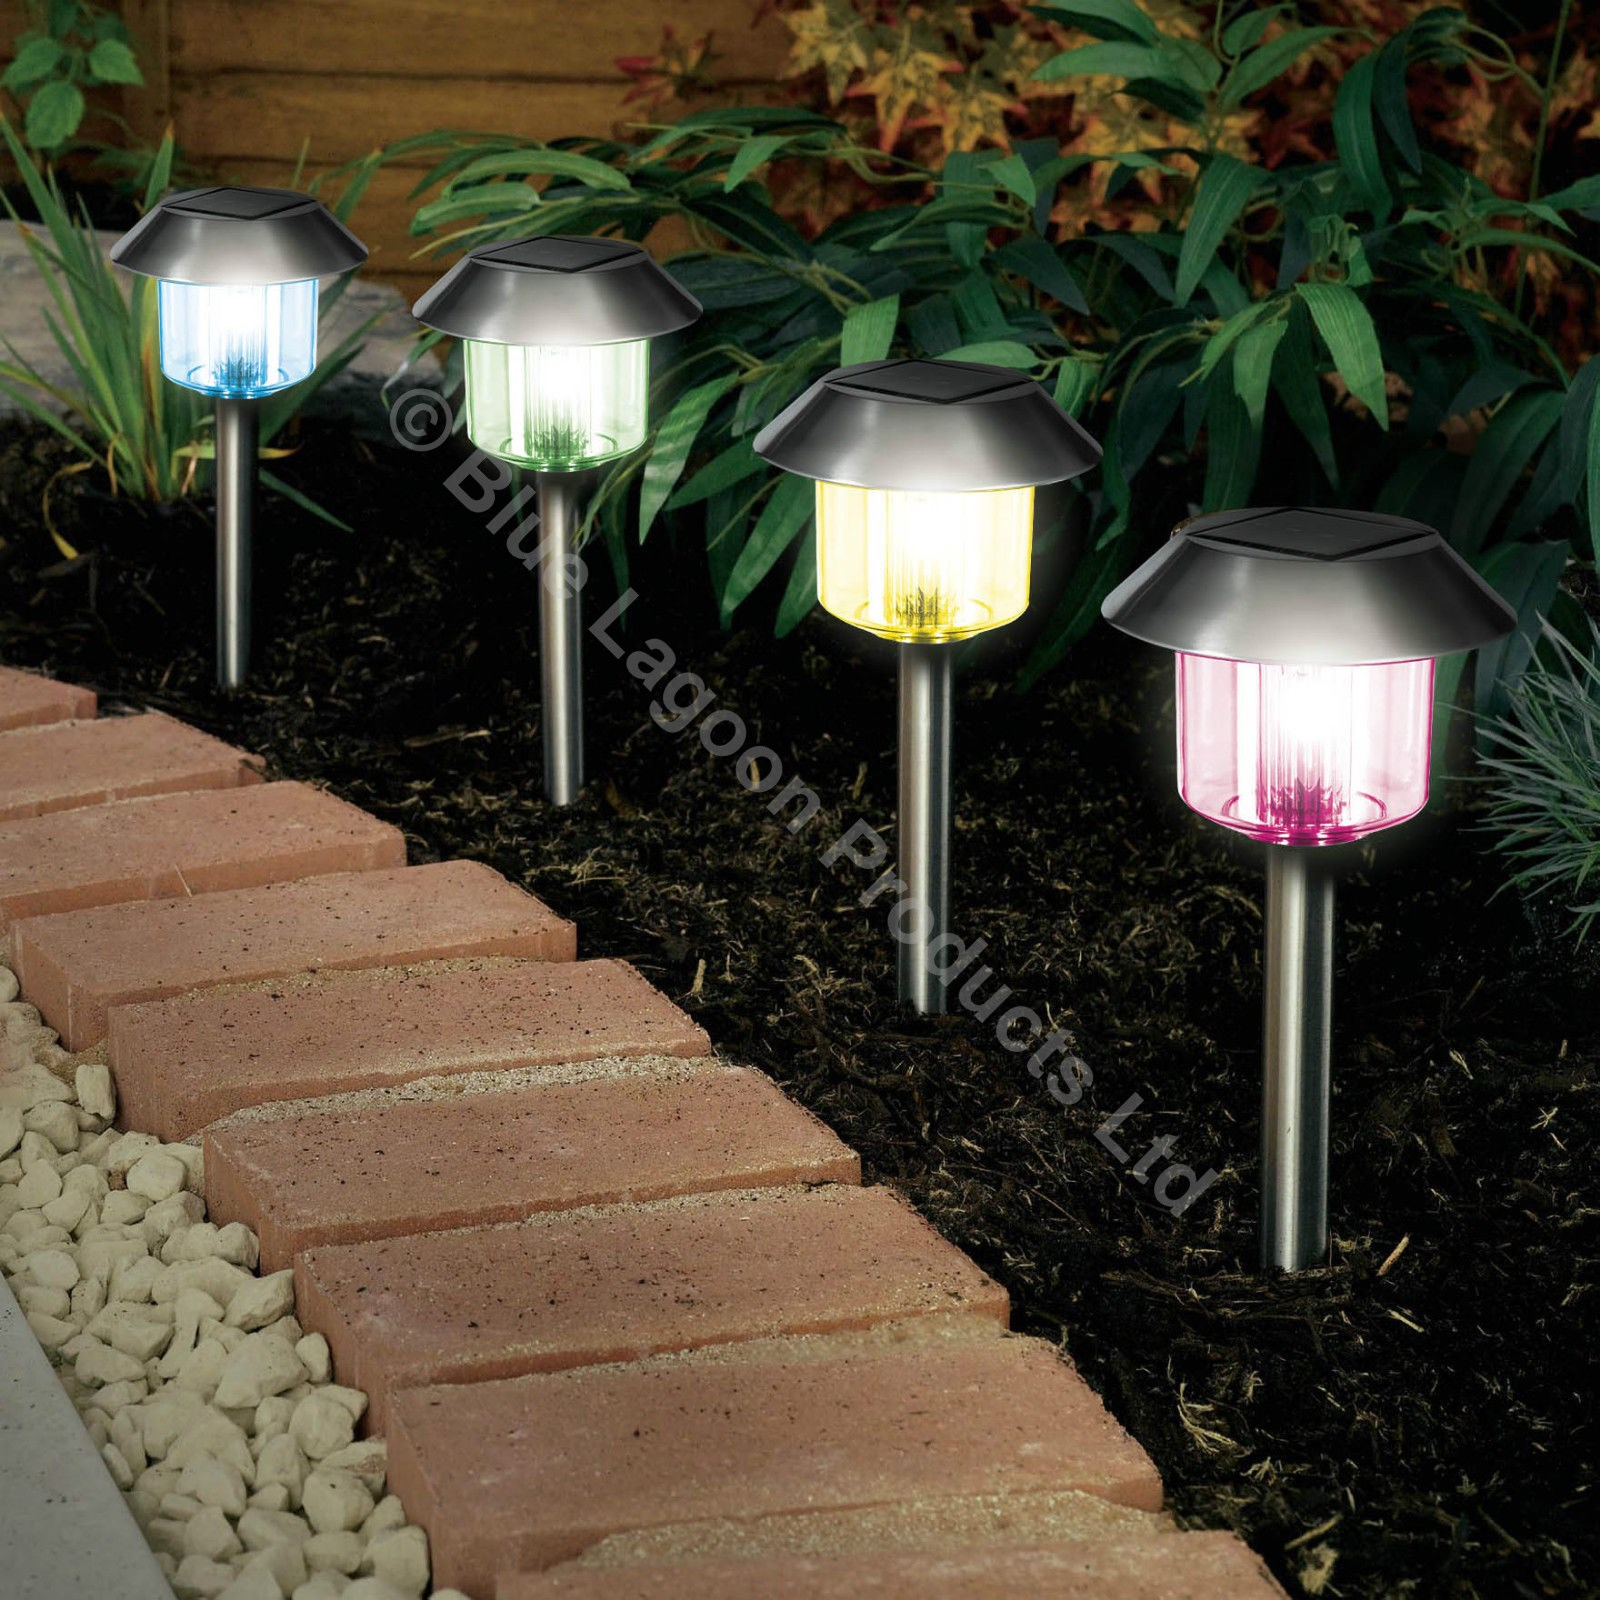 12 x colour changing solar power light led post outdoor lighting powered garden ebay - Decorative garden lights ...